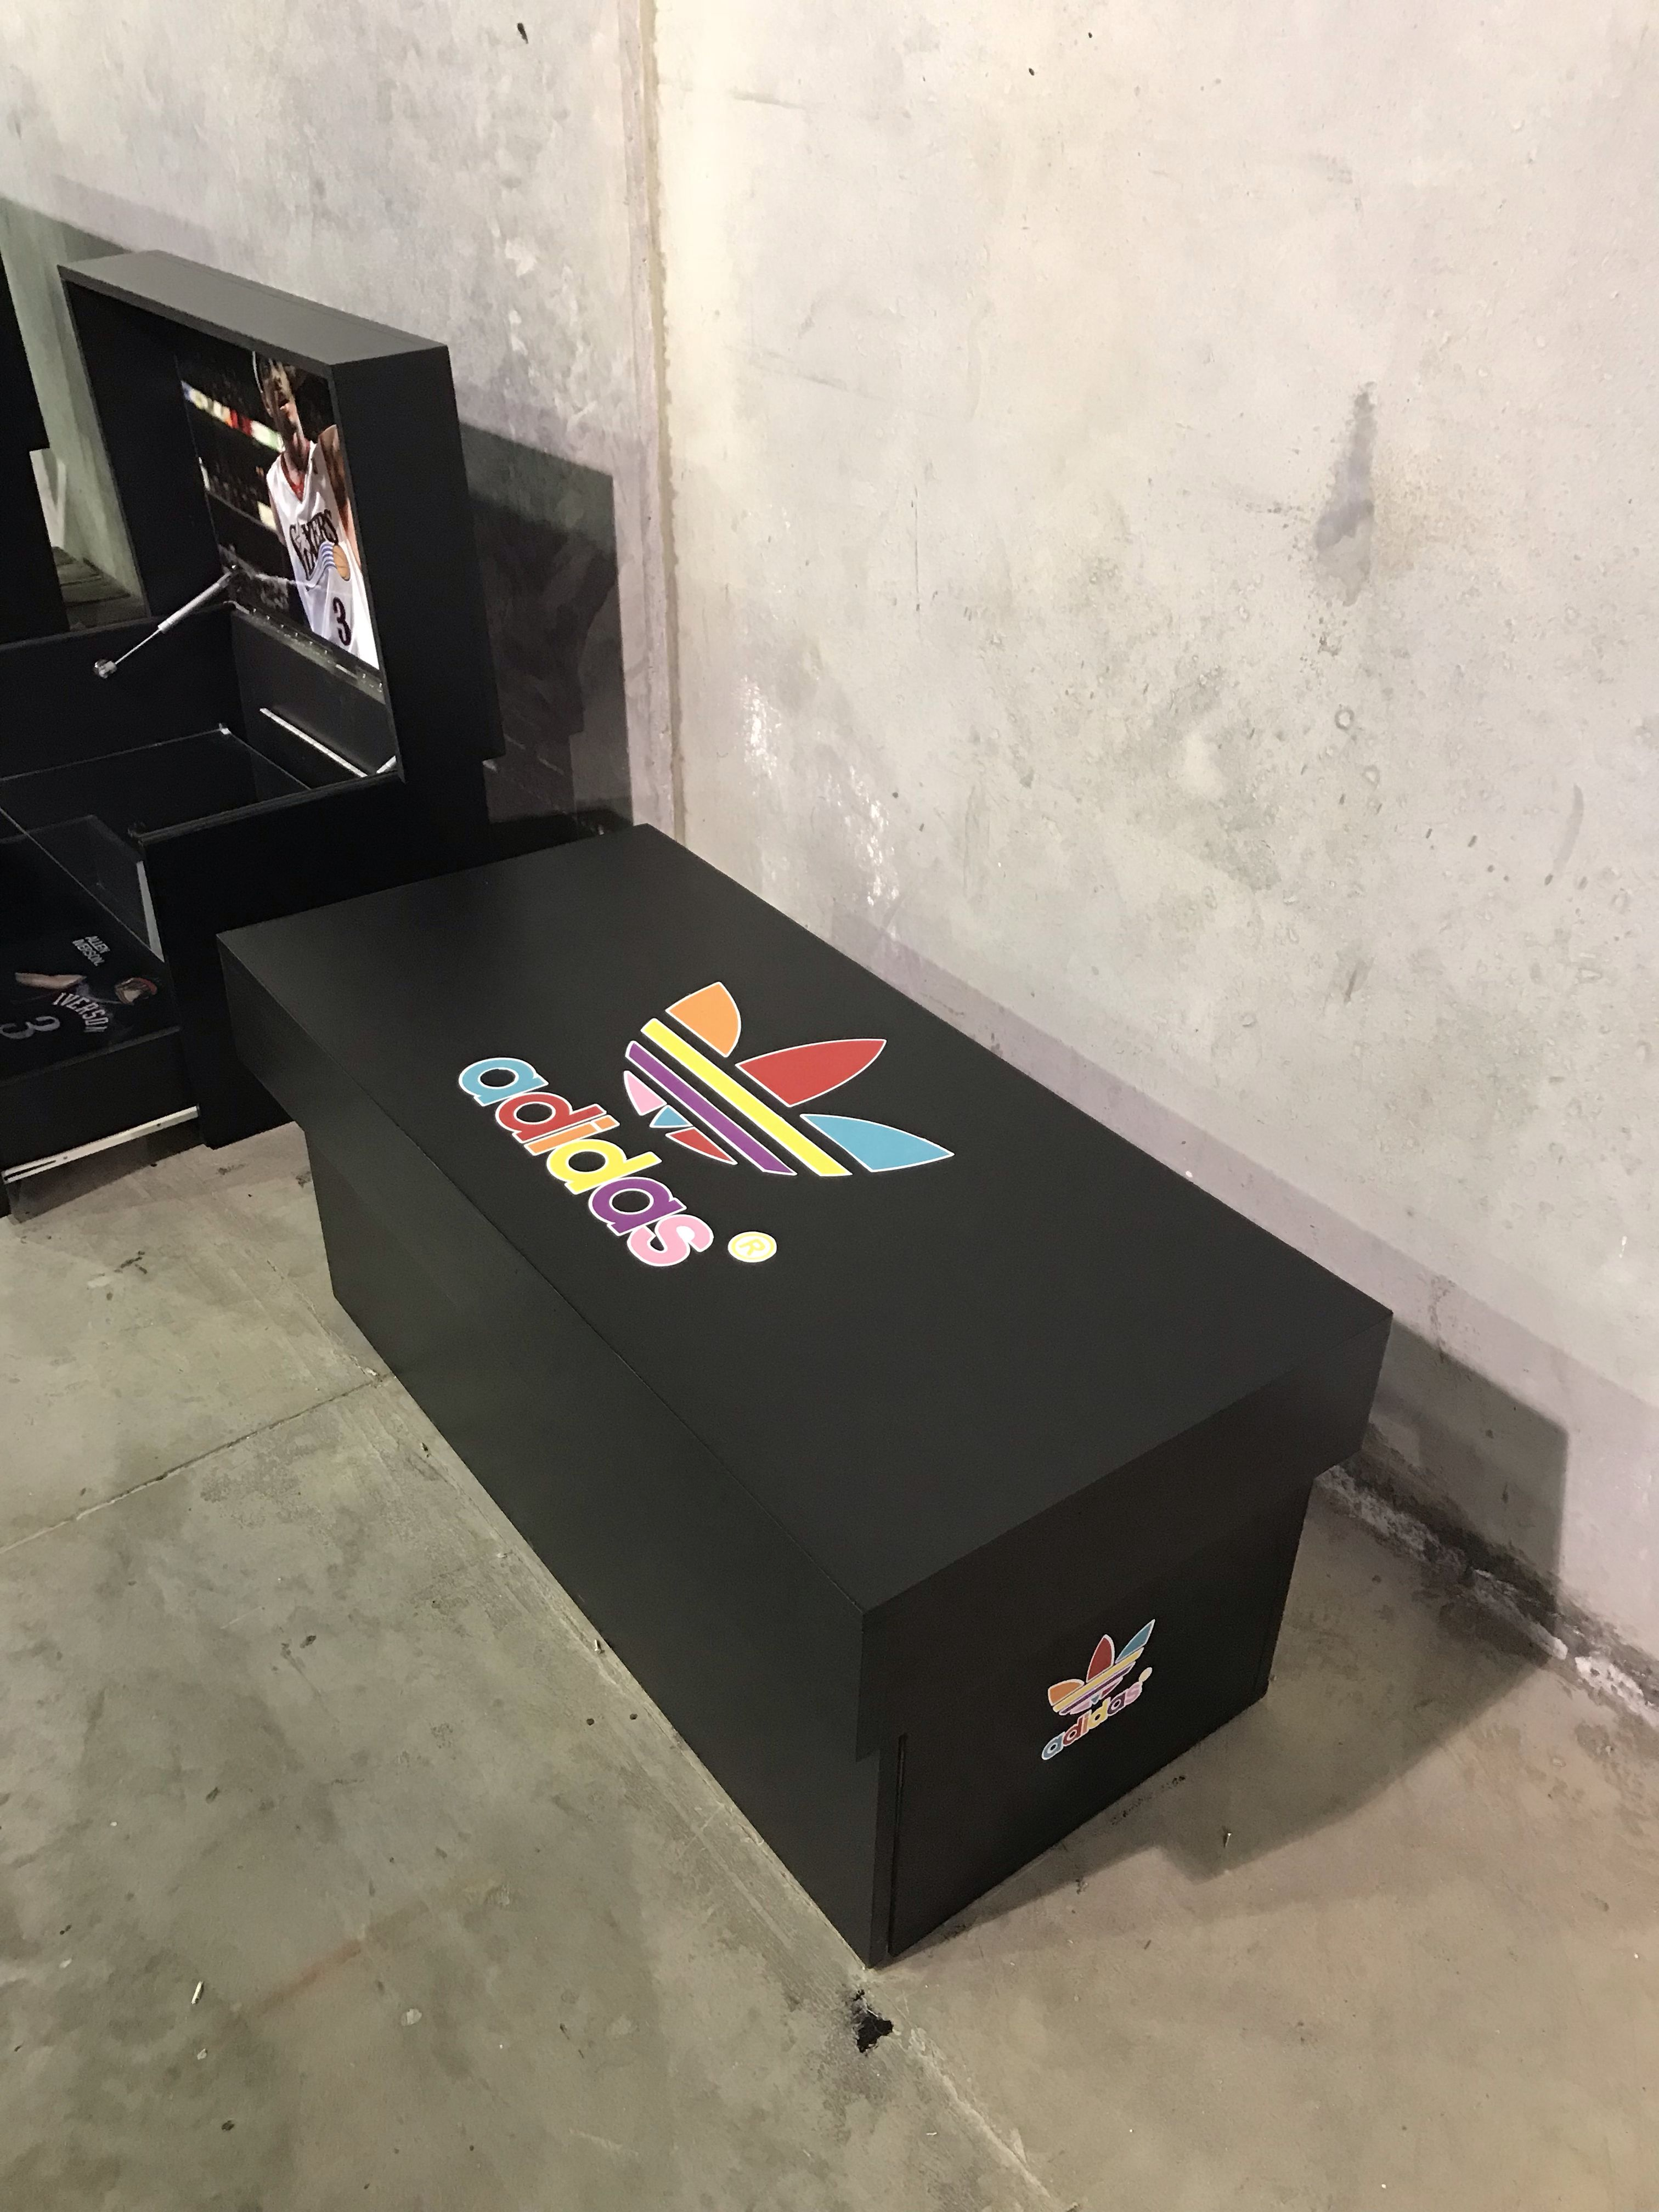 very colorful box with black magic background 😎😎 | shoe